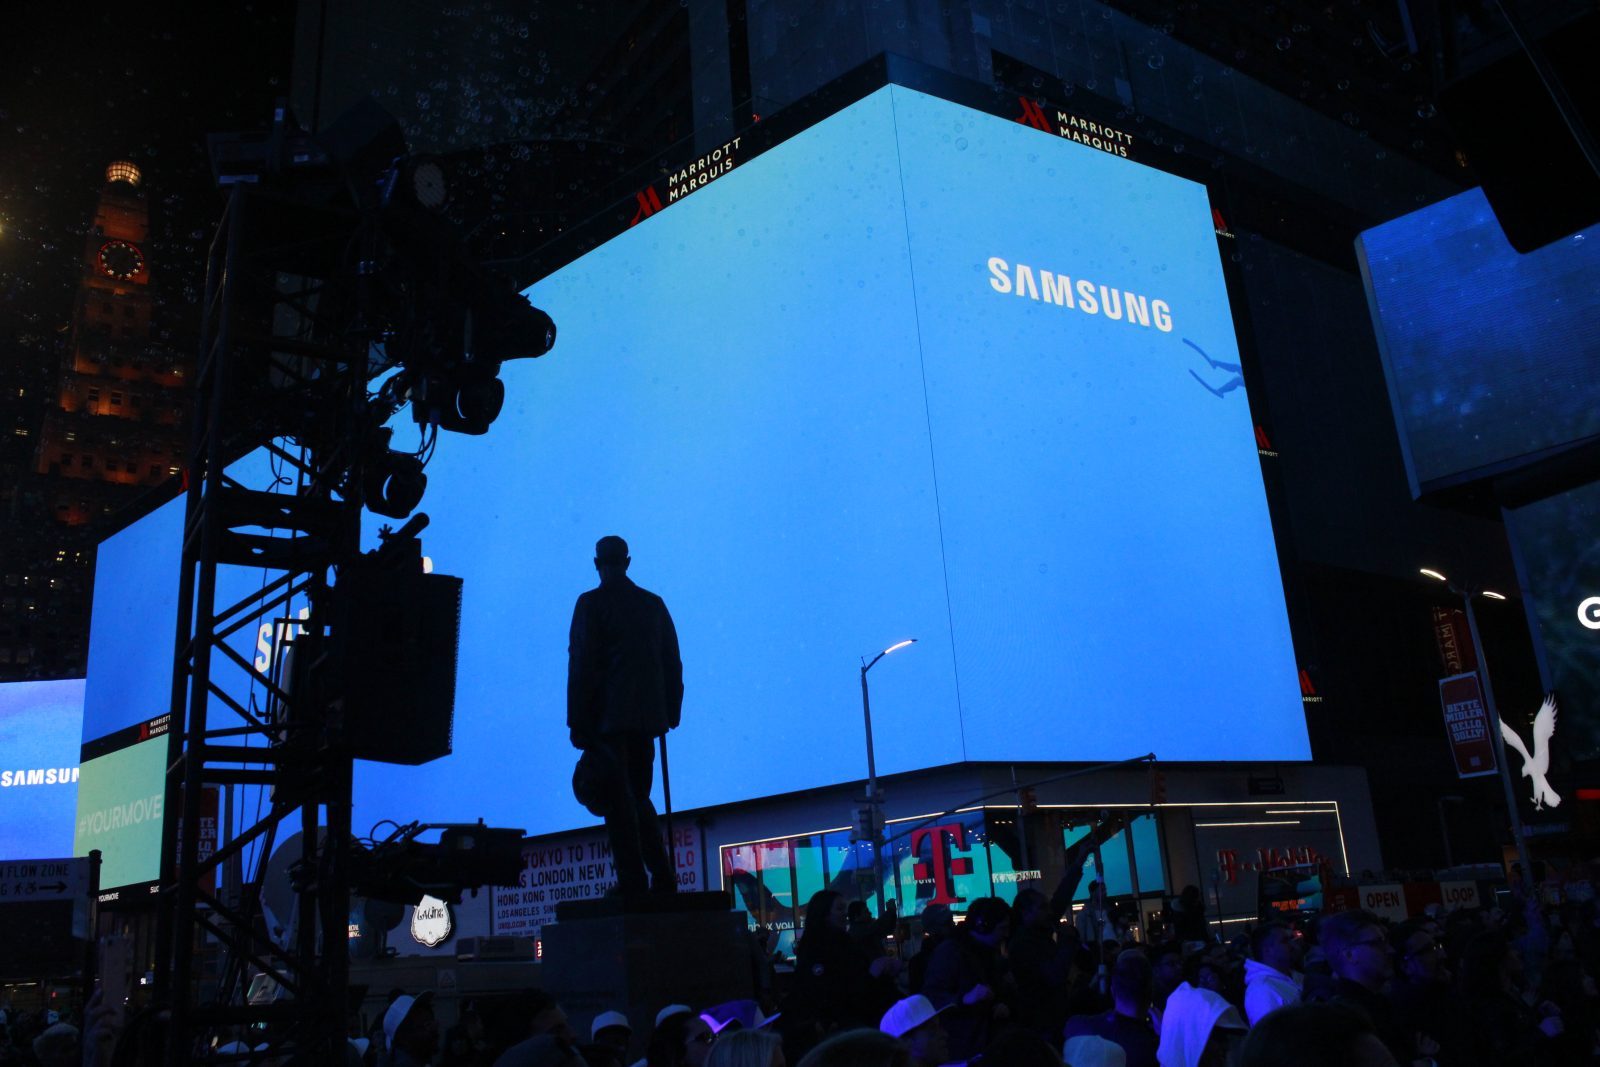 Filming of Samsung Galaxy 8-Times Square-New York